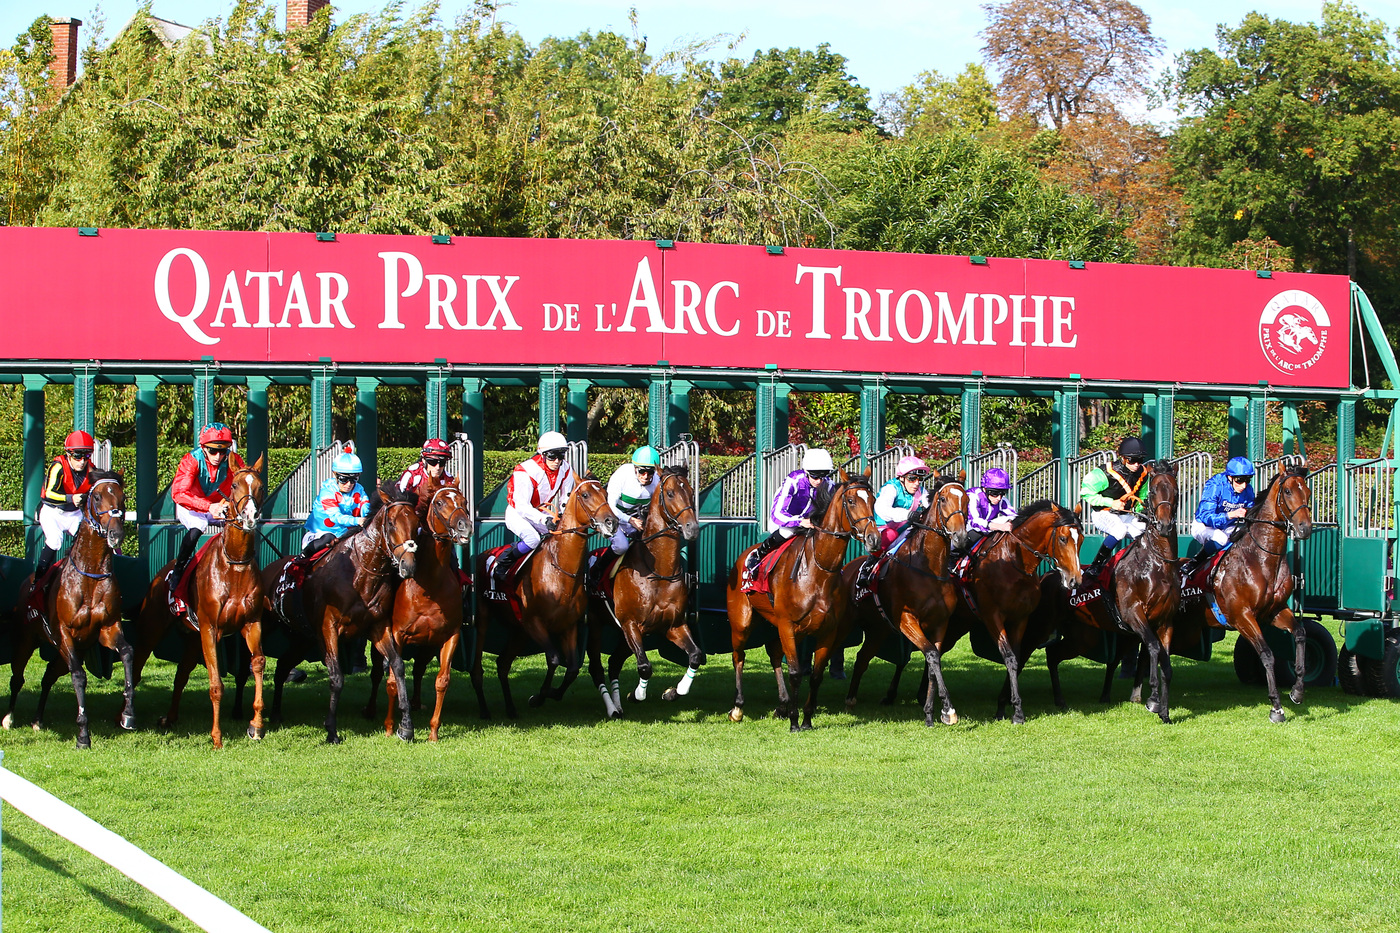 Longines Flat Racing Event: Crystal Ocean, Enable and Waldgeist crowned the 2019 Longines World's Best Racehorses, Qatar Prix de l'Arc de Triomphe named Longines World's Best Horse Race for the fourth time 3